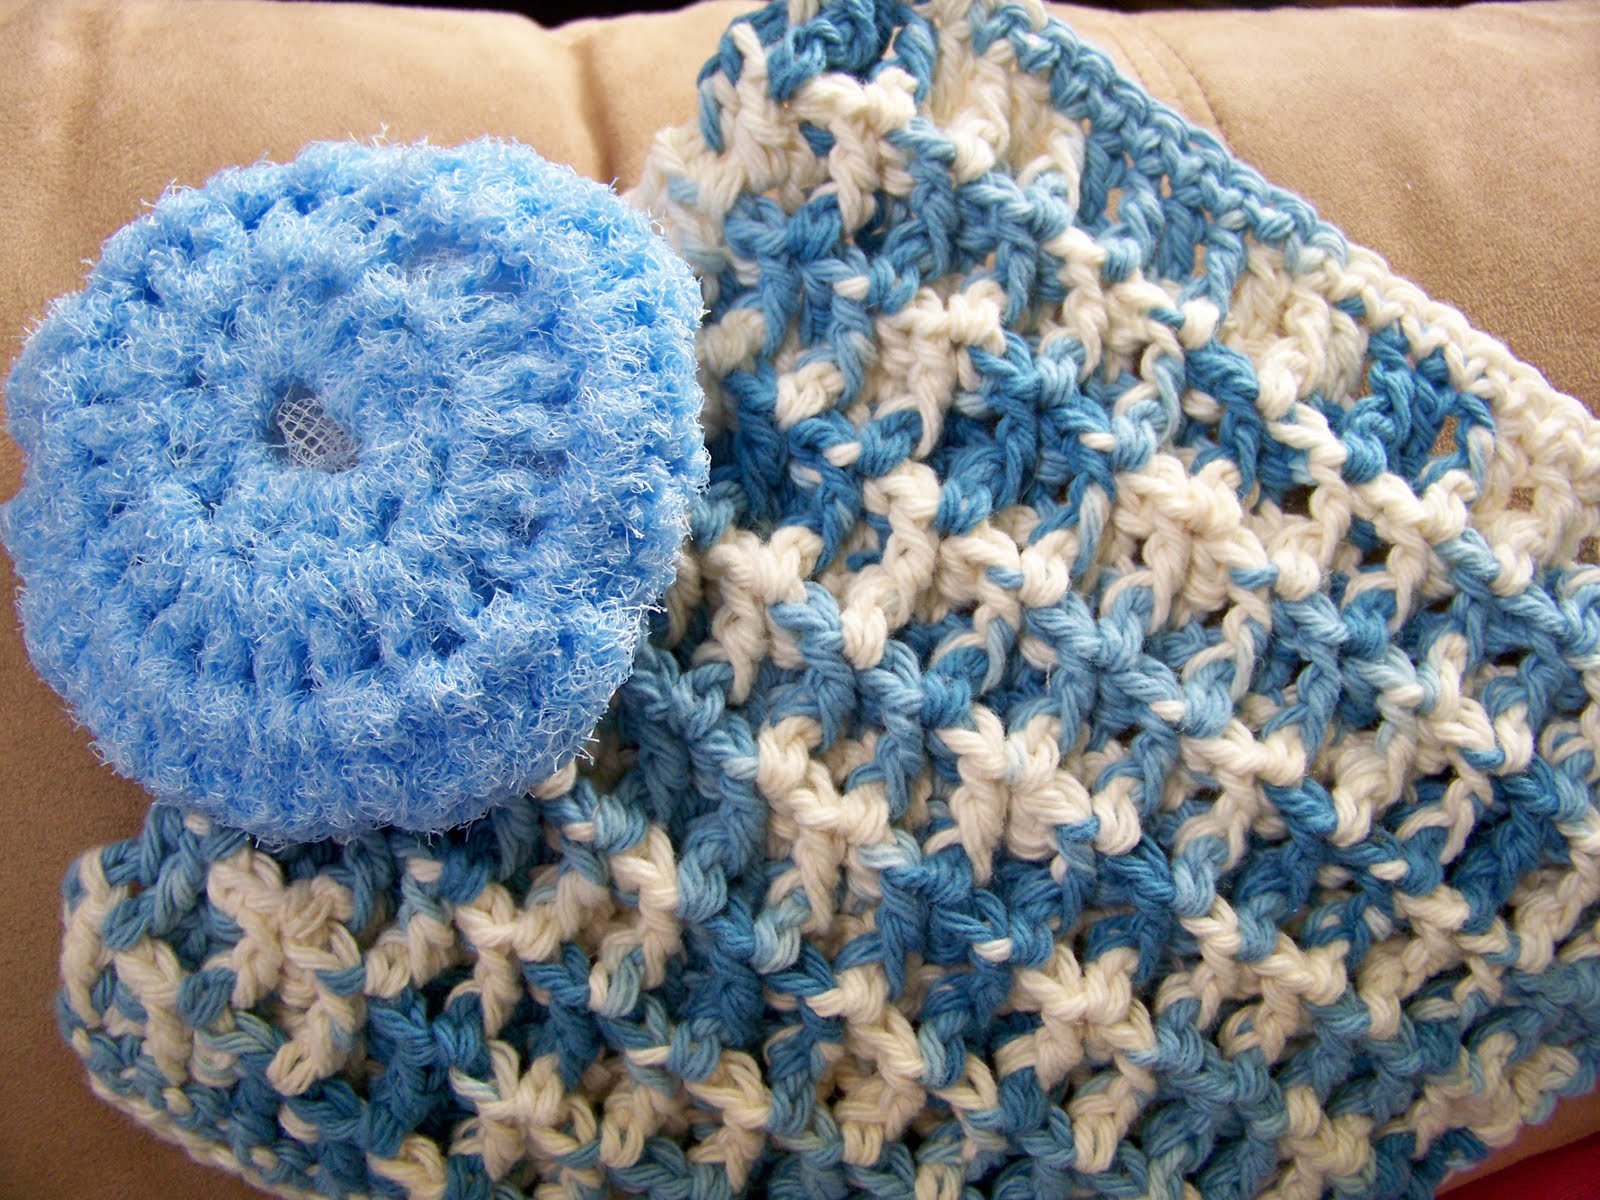 Crocheting Scrubbies With Netting : Simply HomeMade: Scrubby Tutorial/Pattern